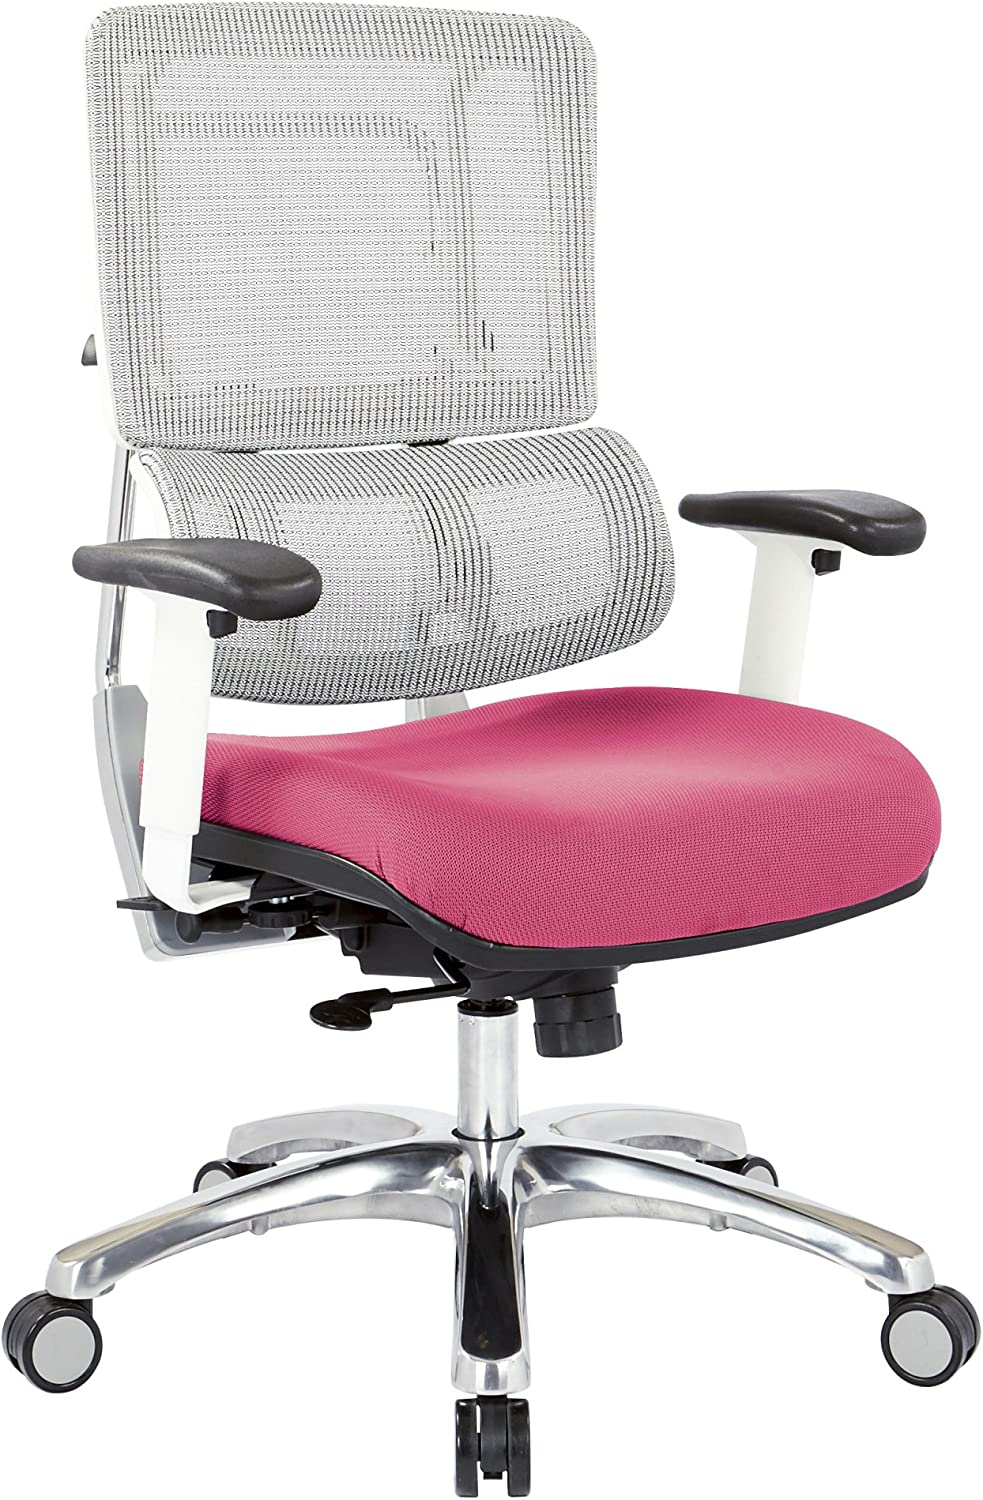 Office Star Breathable White Vertical Mesh Back and Padded Steel Mesh Seat Managers Chair with Adjustable Arms and Polished Aluminum Accents, Pink Seat